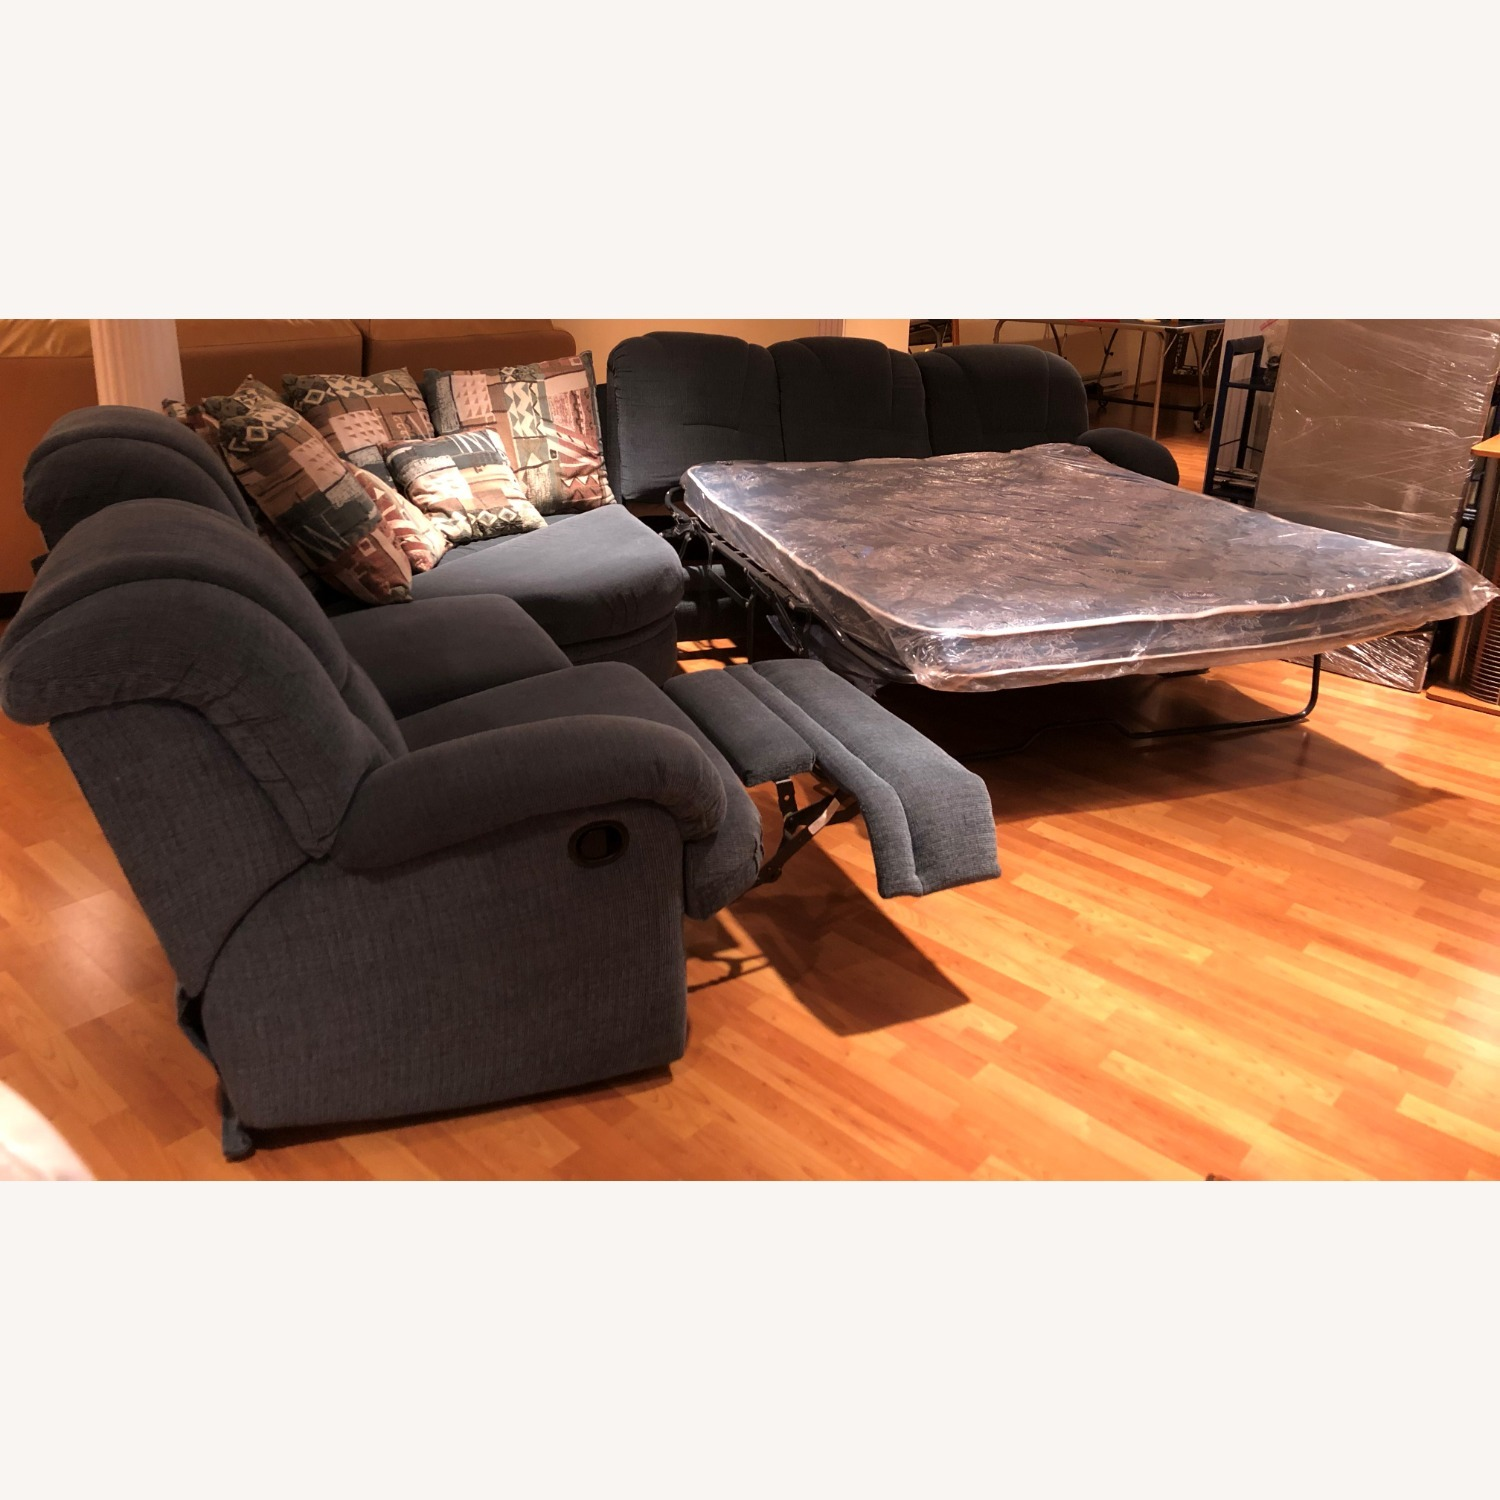 Stratford Sectional Sofa Recliner and Pullout Bed - image-2